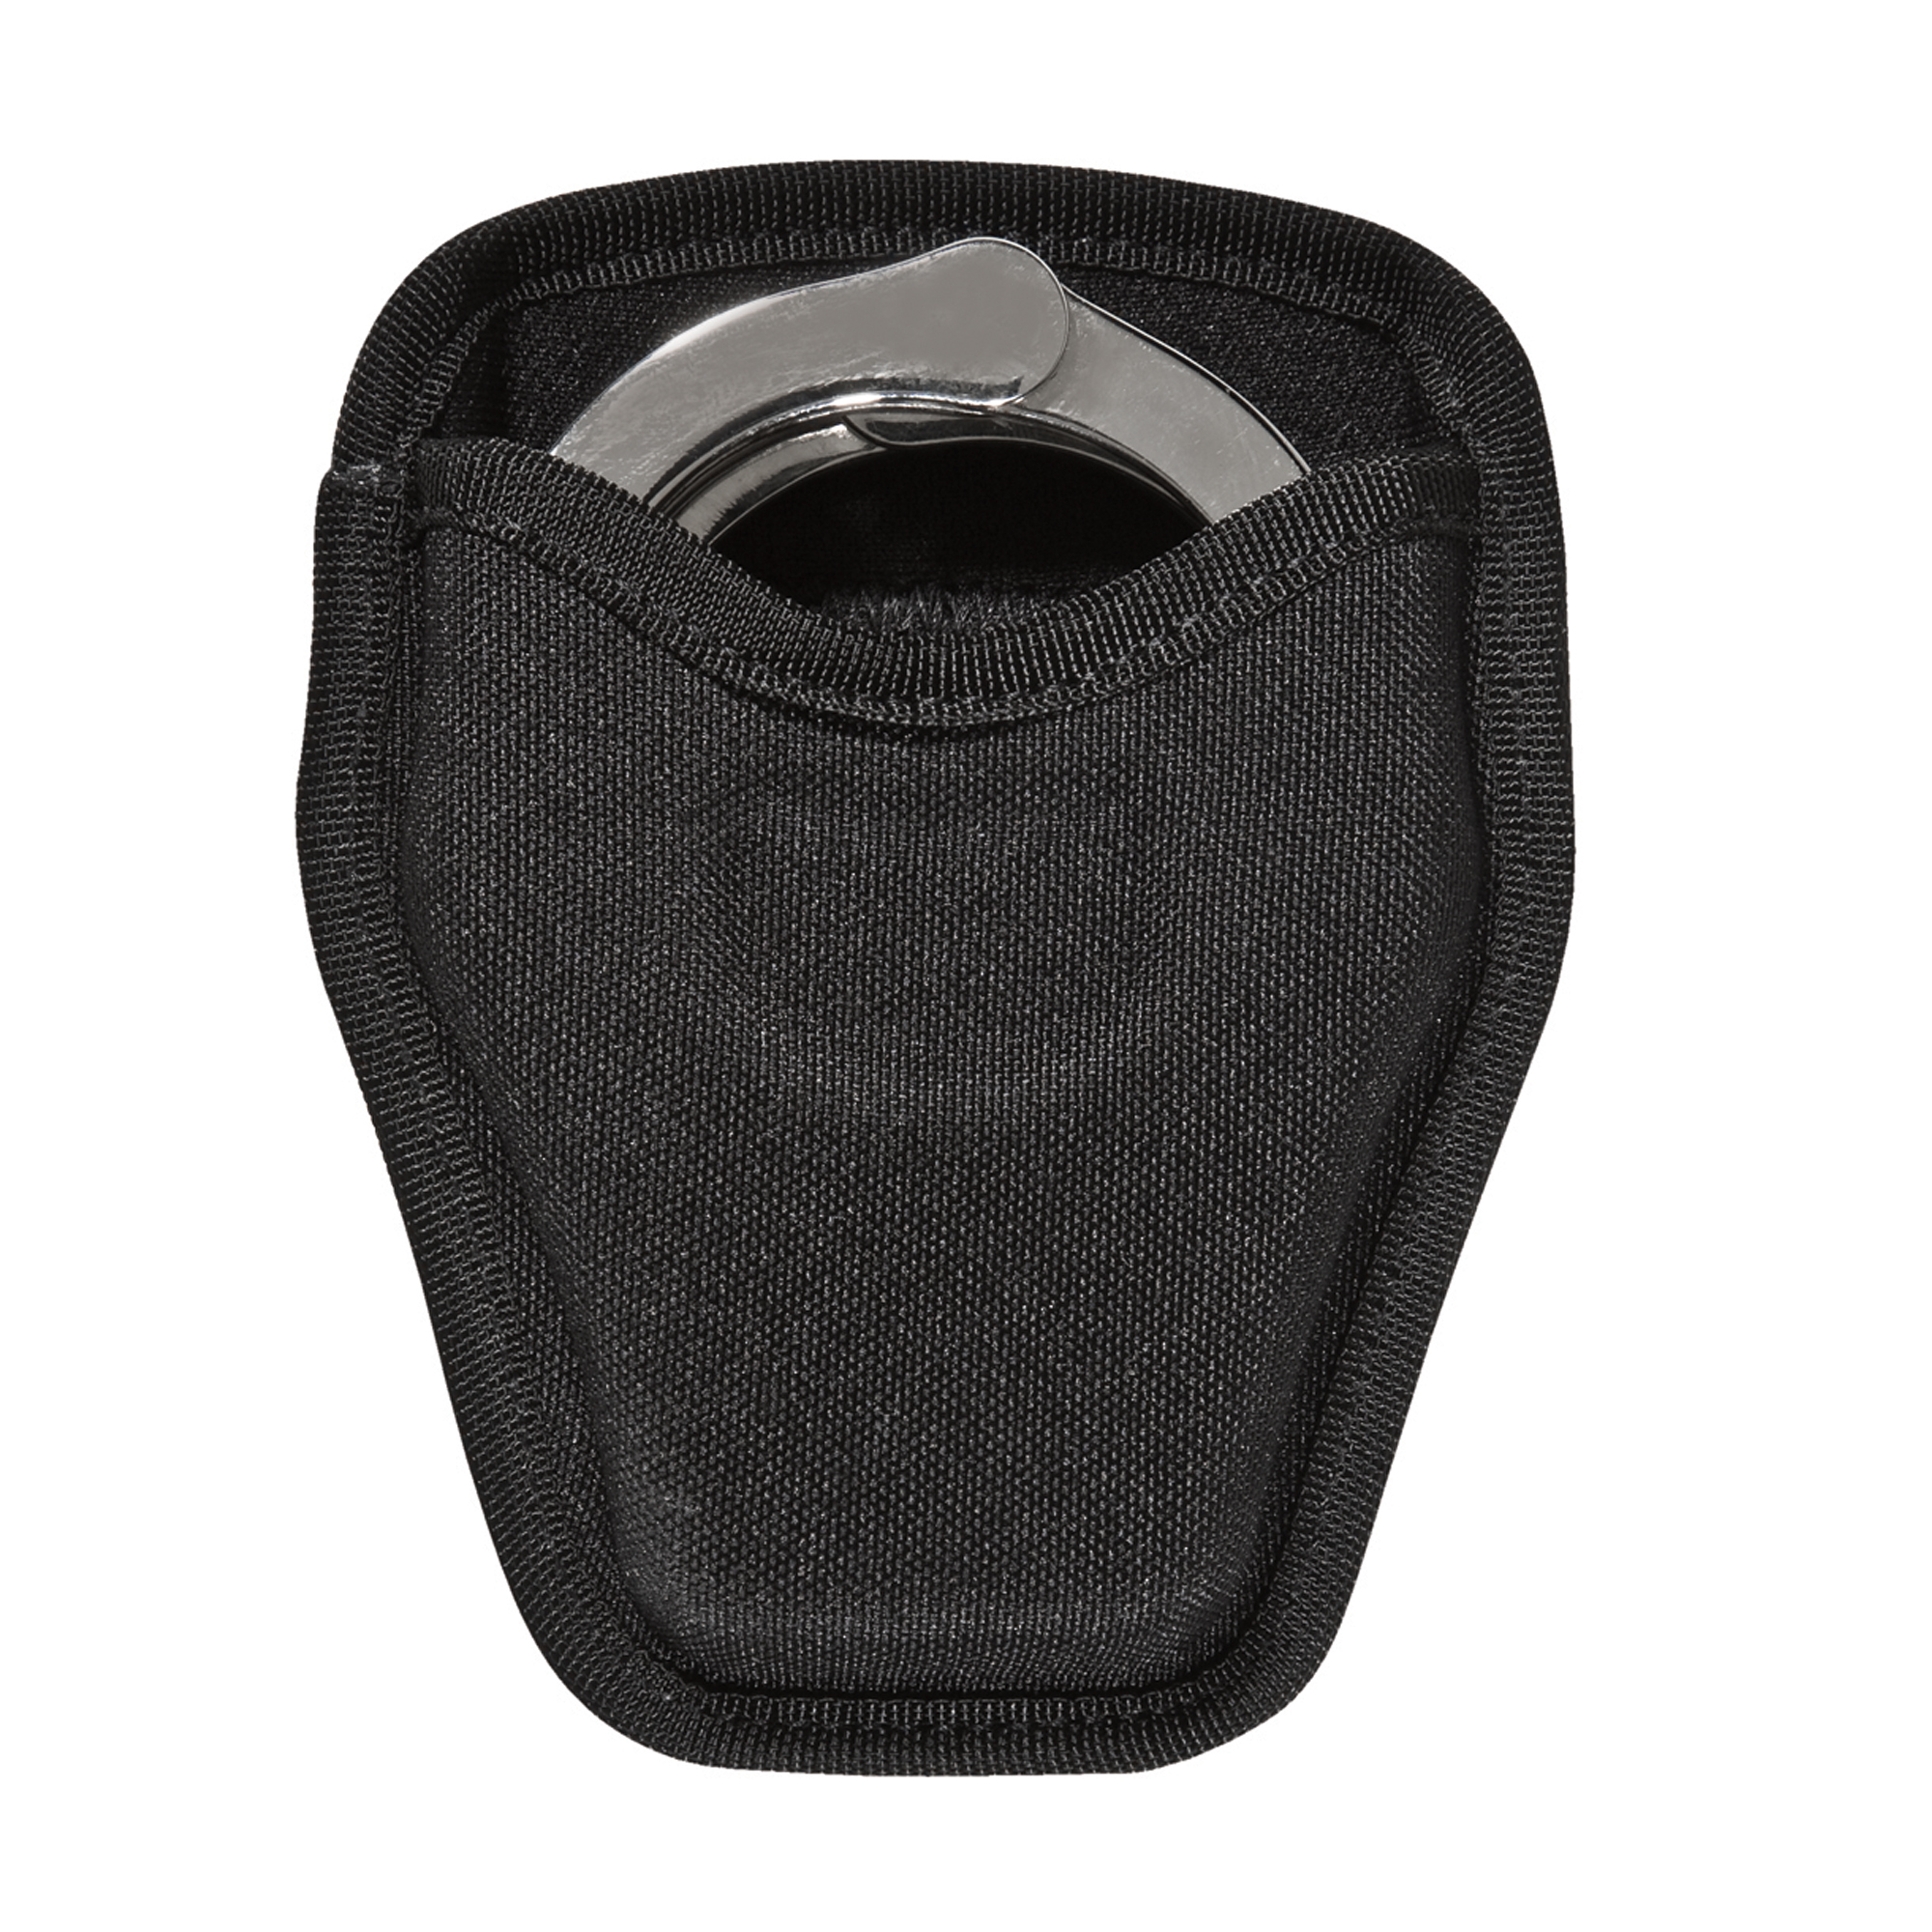 The Model 8034 PatrolTek Open Handcuff Case features a pull through style for easy access to the cuffs. Made of trilaminate construction with 600-denier woven finish. A dual web belt loop design conveniently accommodates both 2 in. (50 mm) and 2.25 in. (58 mm) belts widths.